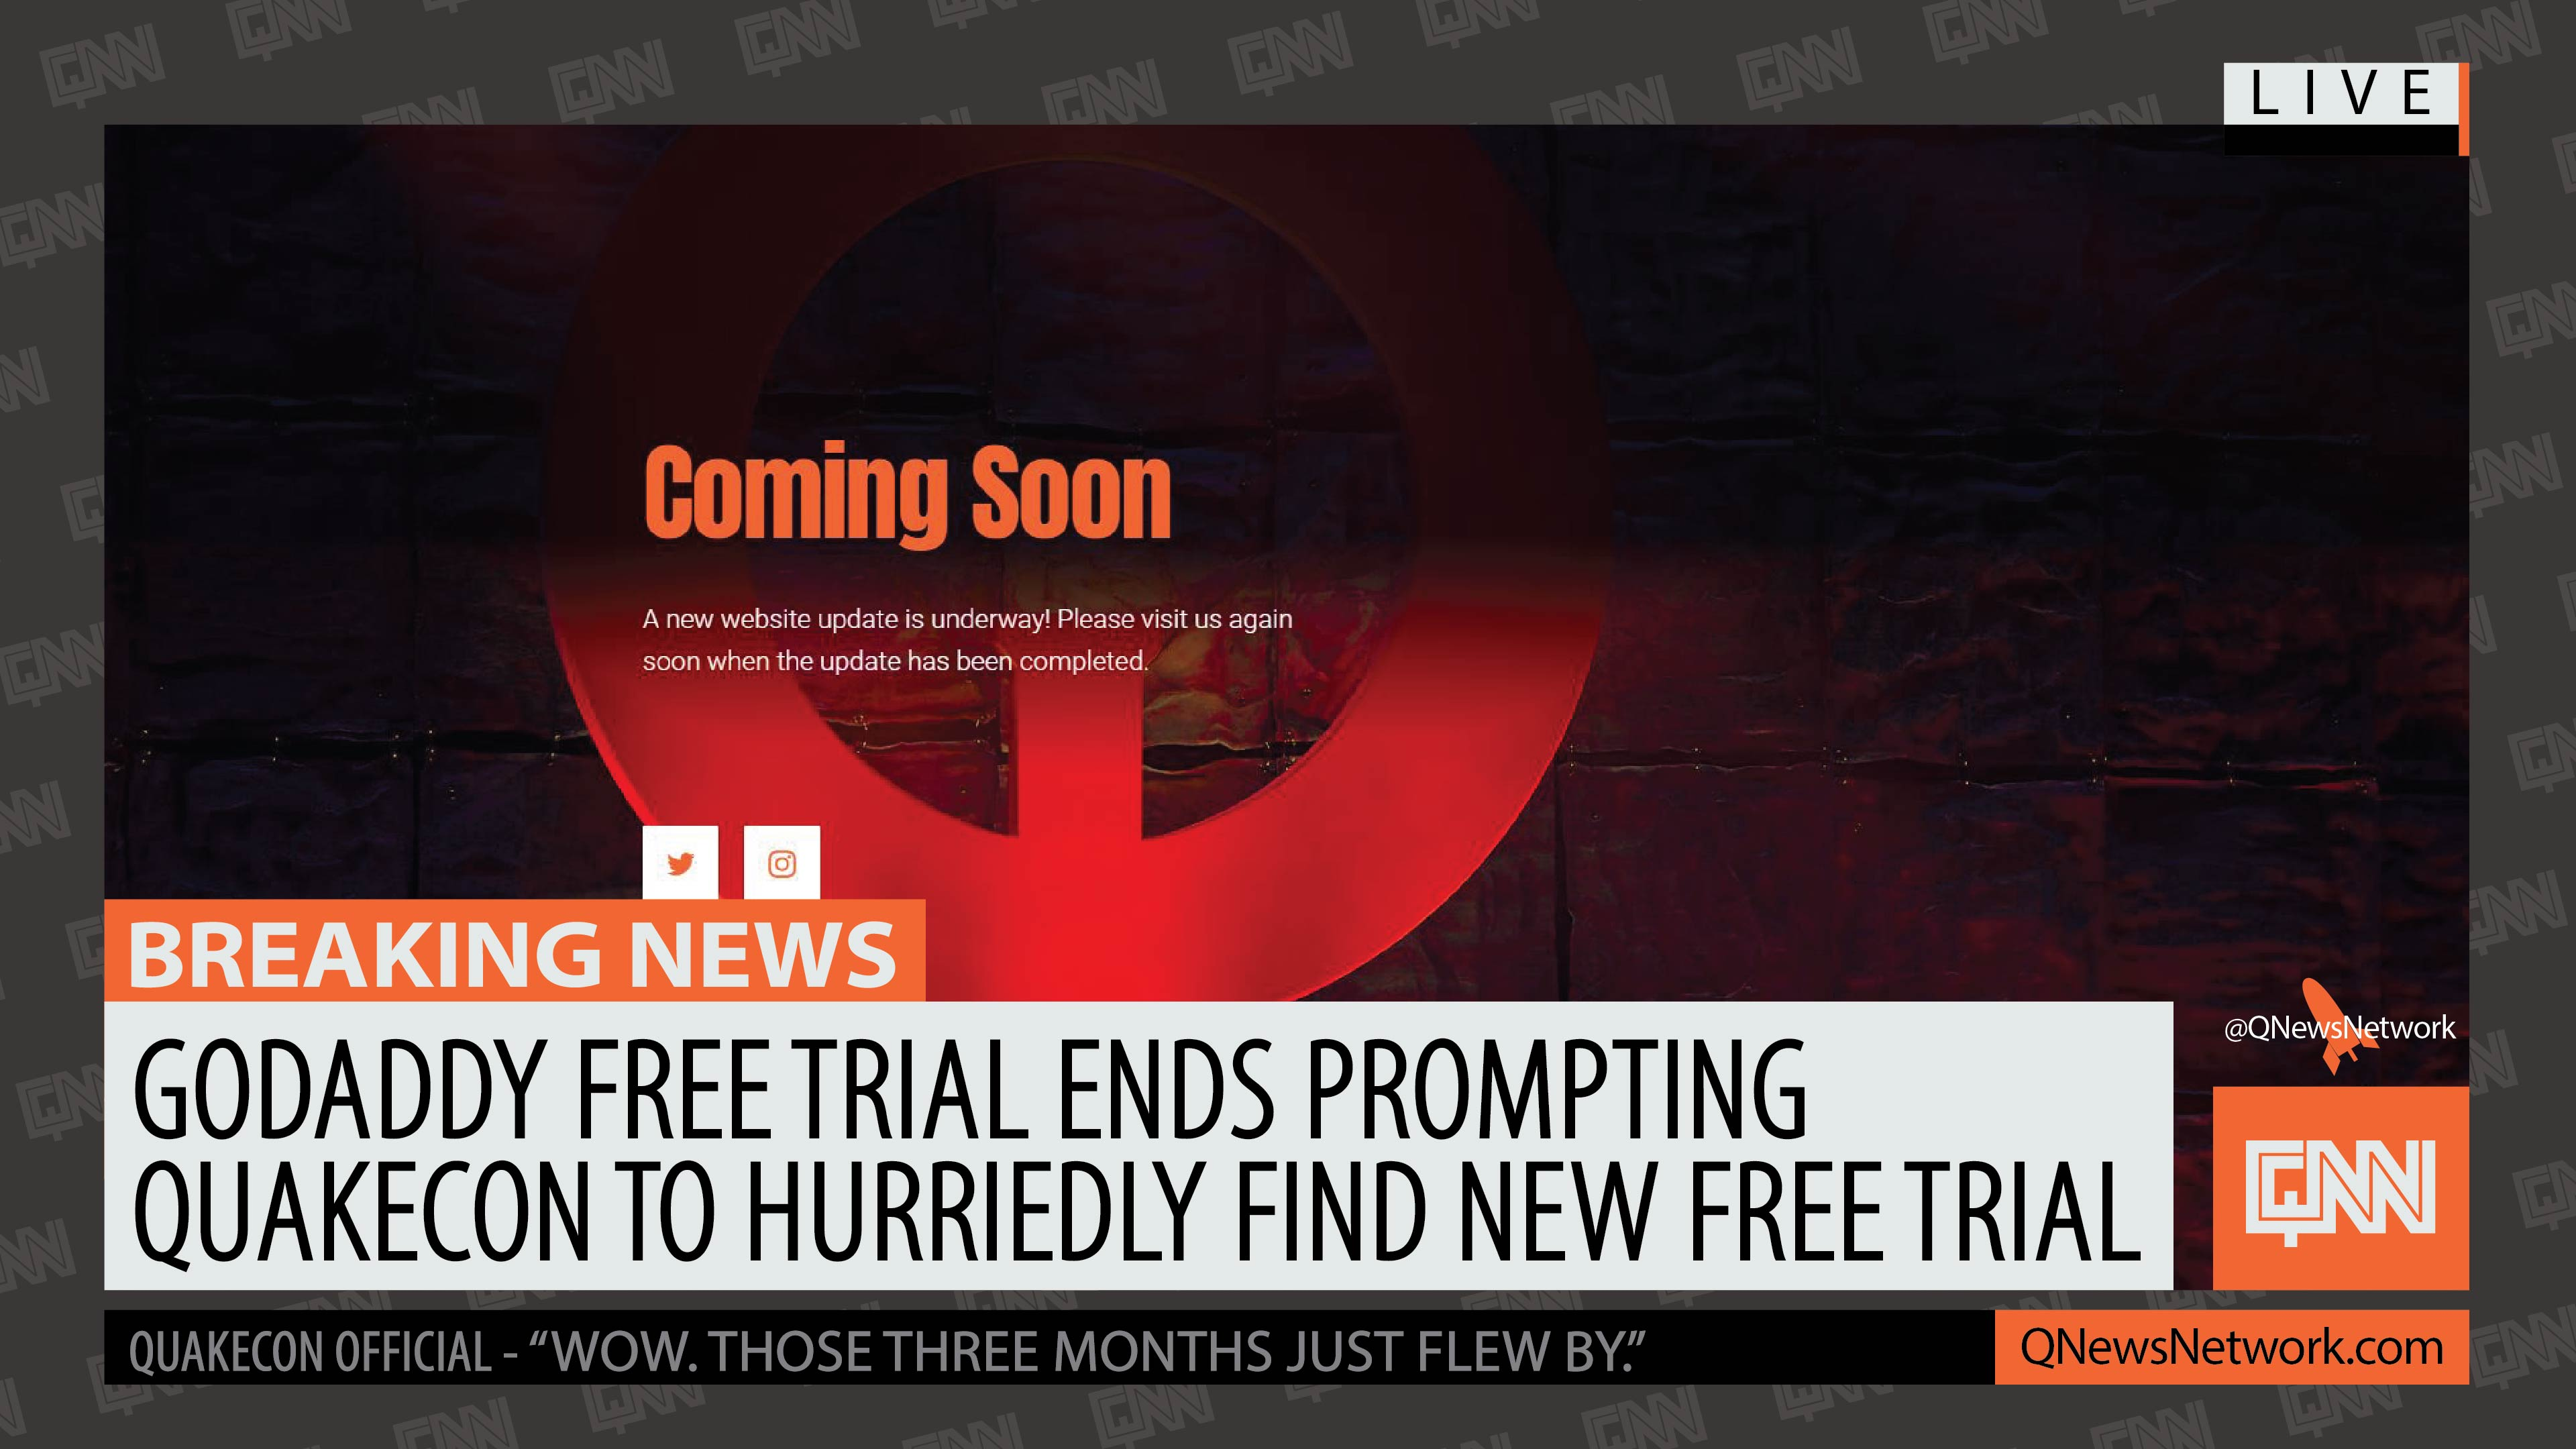 GoDaddy Free Trial Ends Prompting Quakecon to Hurriedly Find New Free Trial